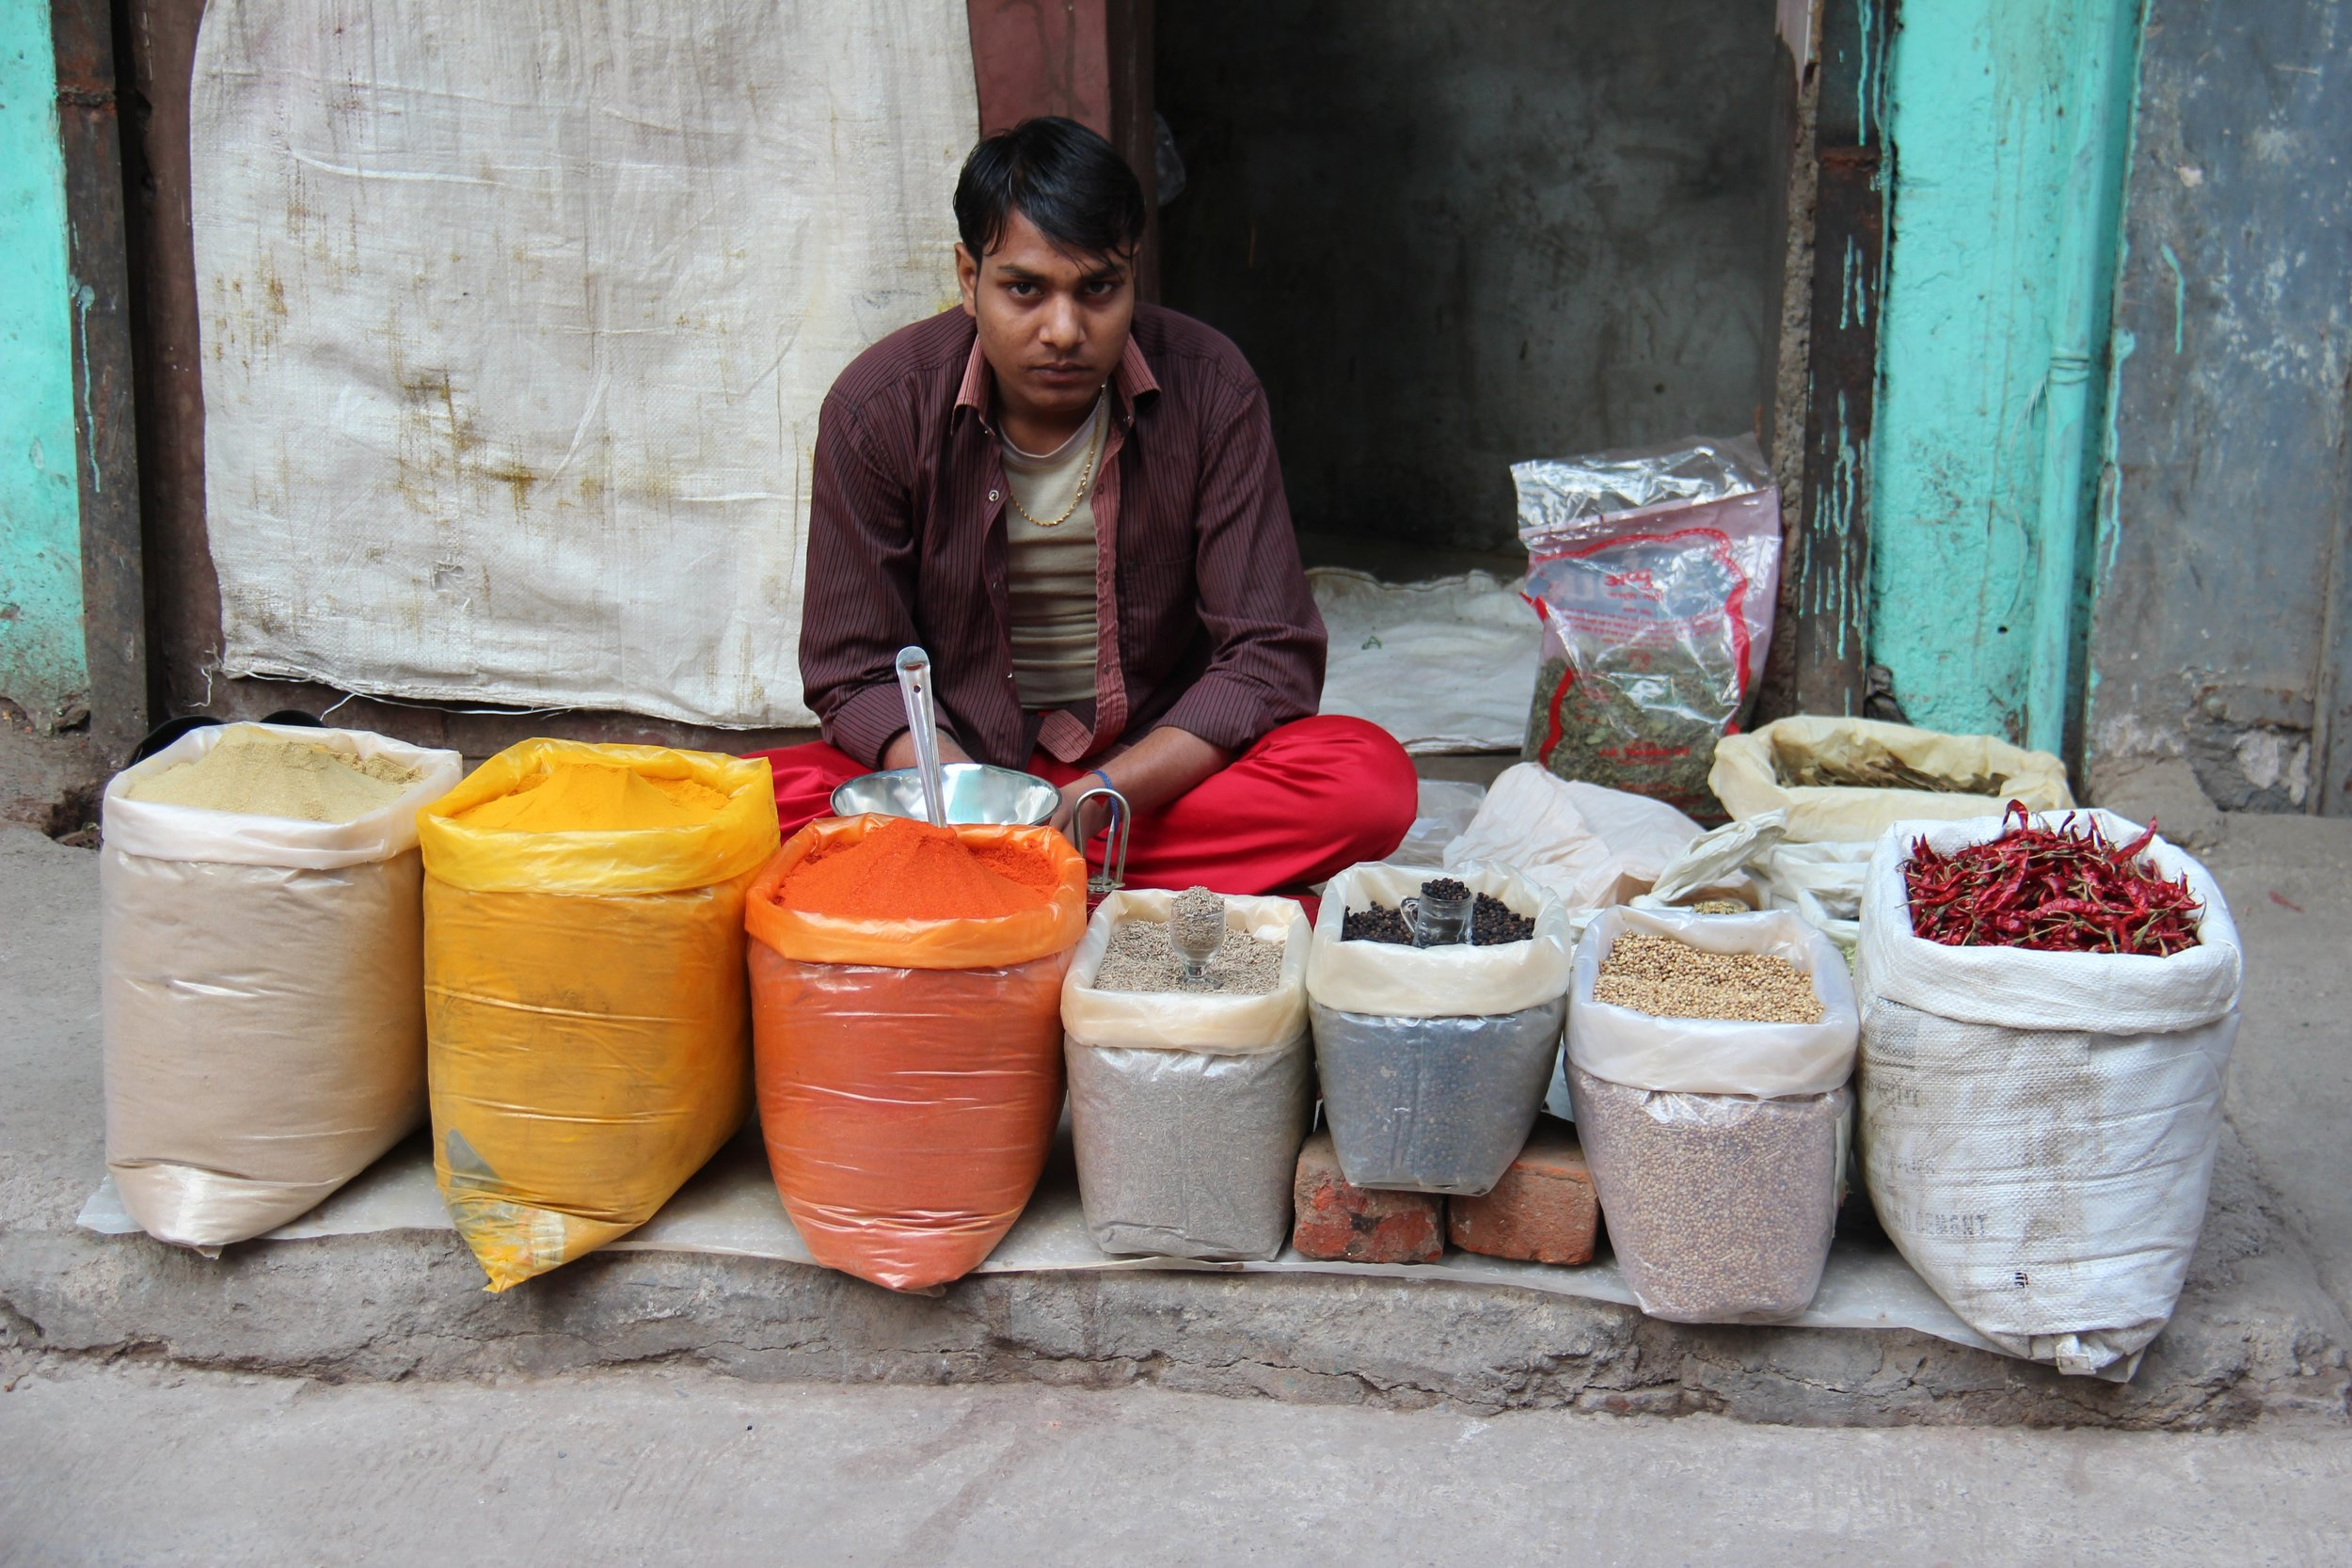 A Delhi Essay - The people of Delhi